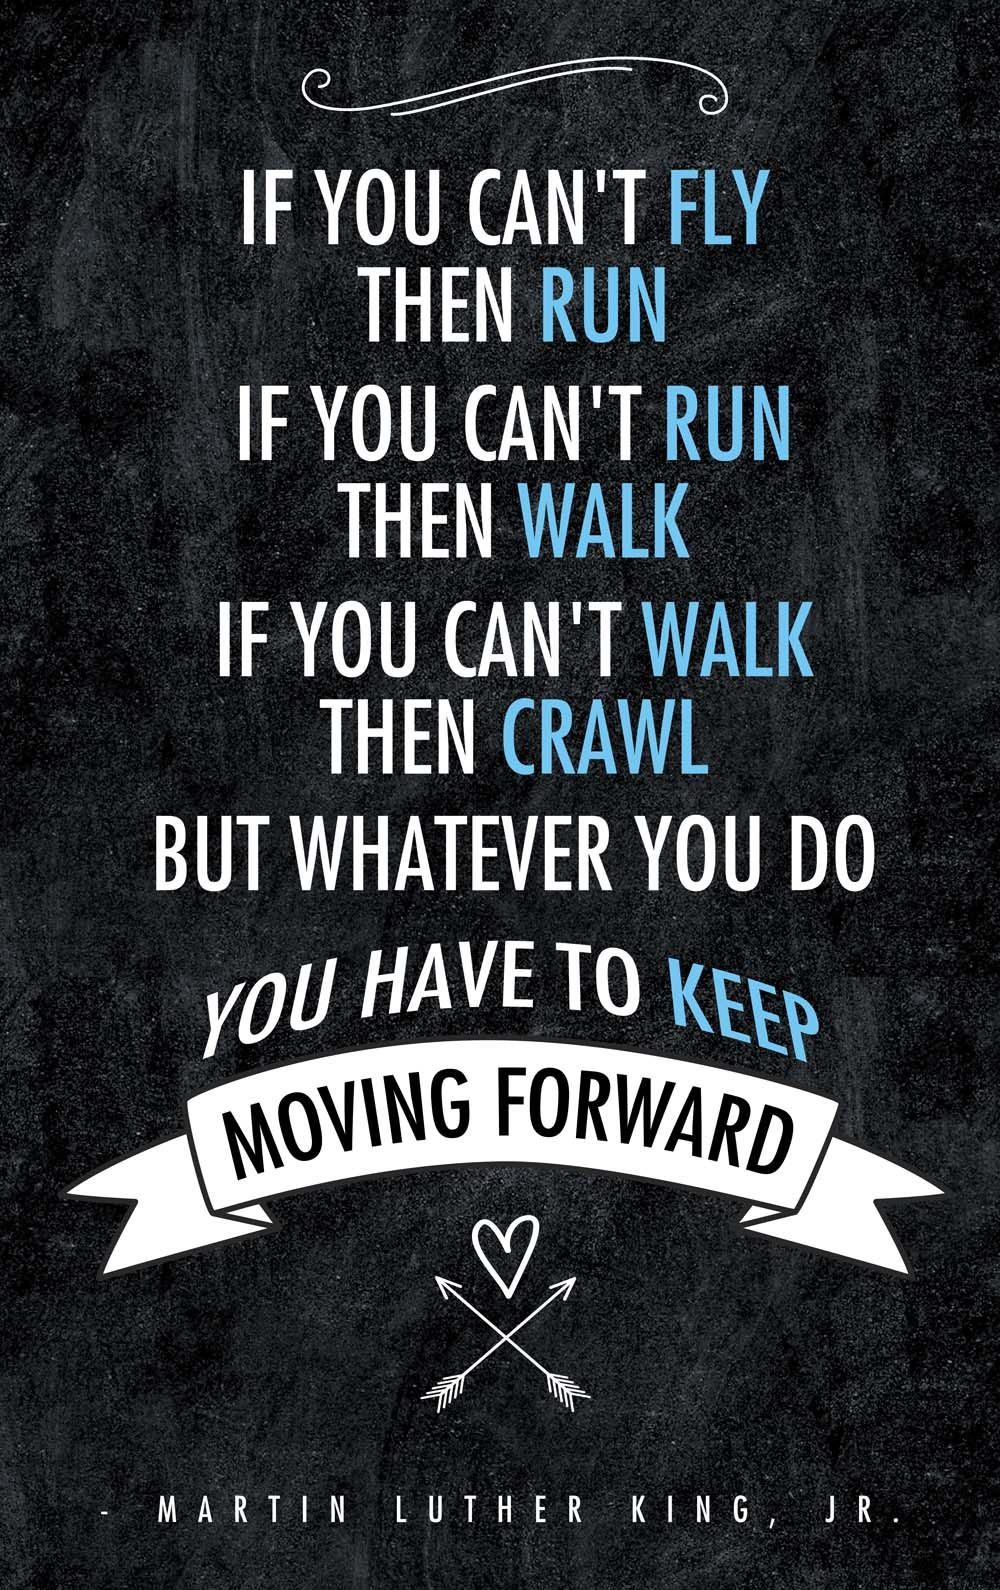 Move Forward Quotes Classy Keep Moving Forward #quote #martinlutherking  Inspiration Quotes